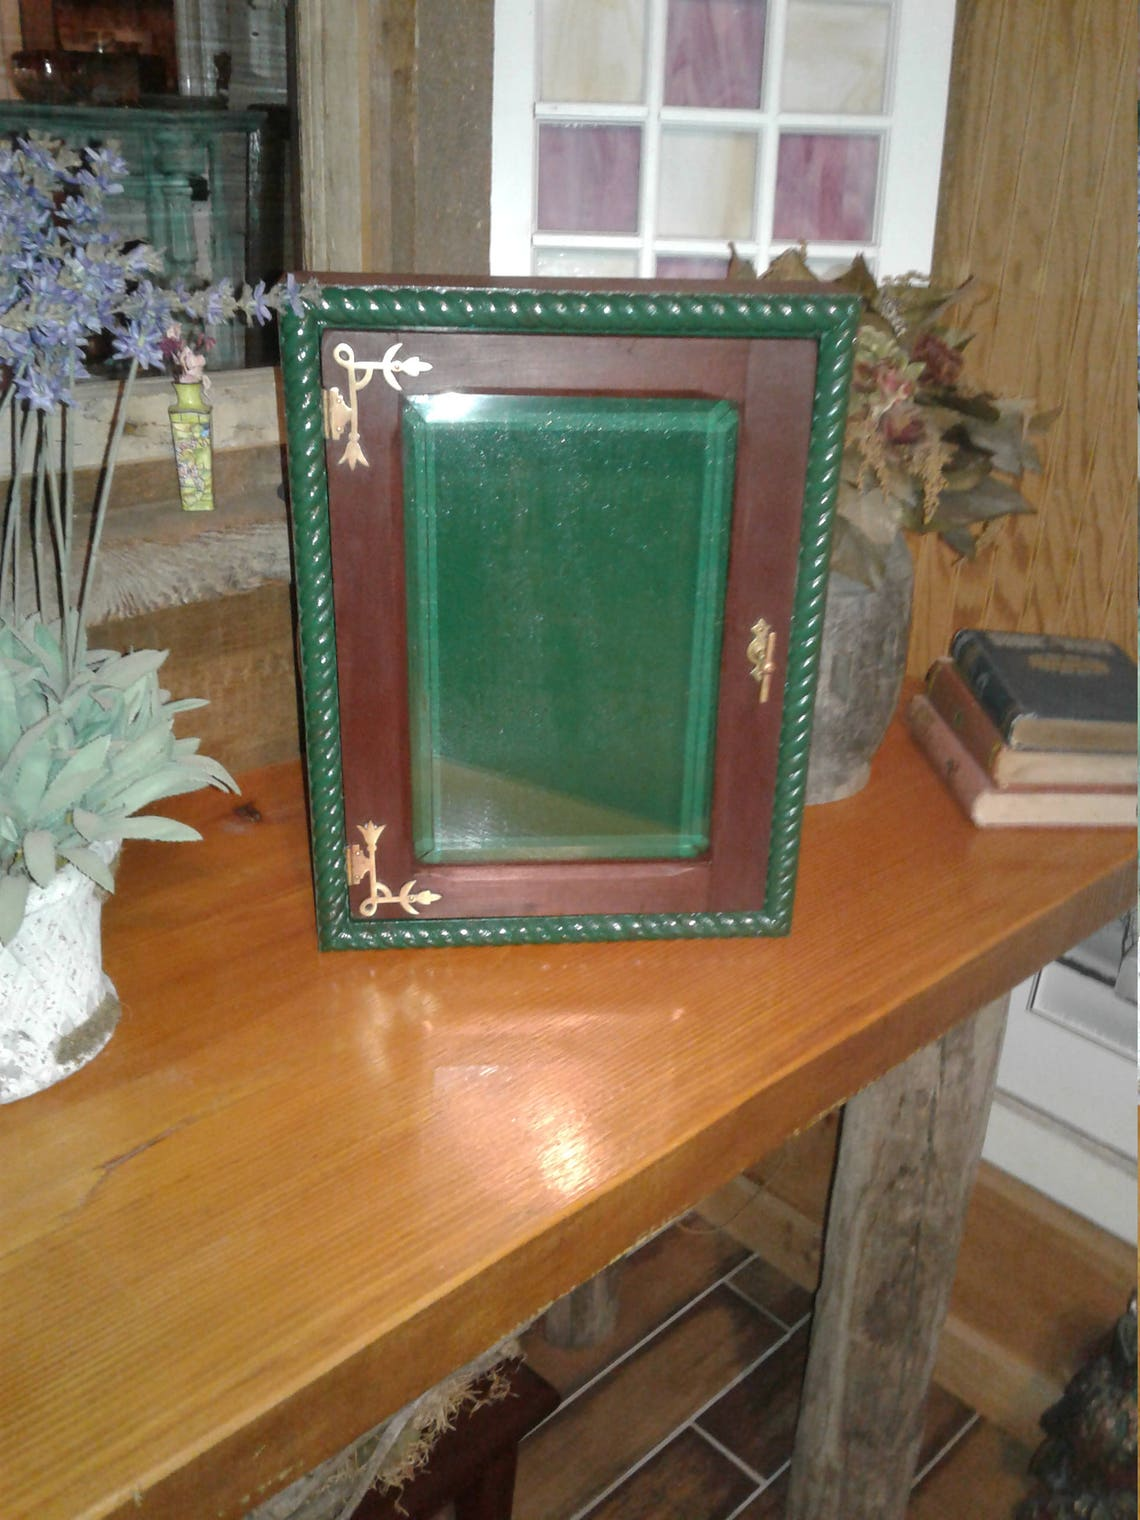 Antique Beveled Glass Window Framed Into Medicine Apothecary Cabinet. Makes Great Curio, Jewelry Box, Spice Rack, Cupboard for Any Room